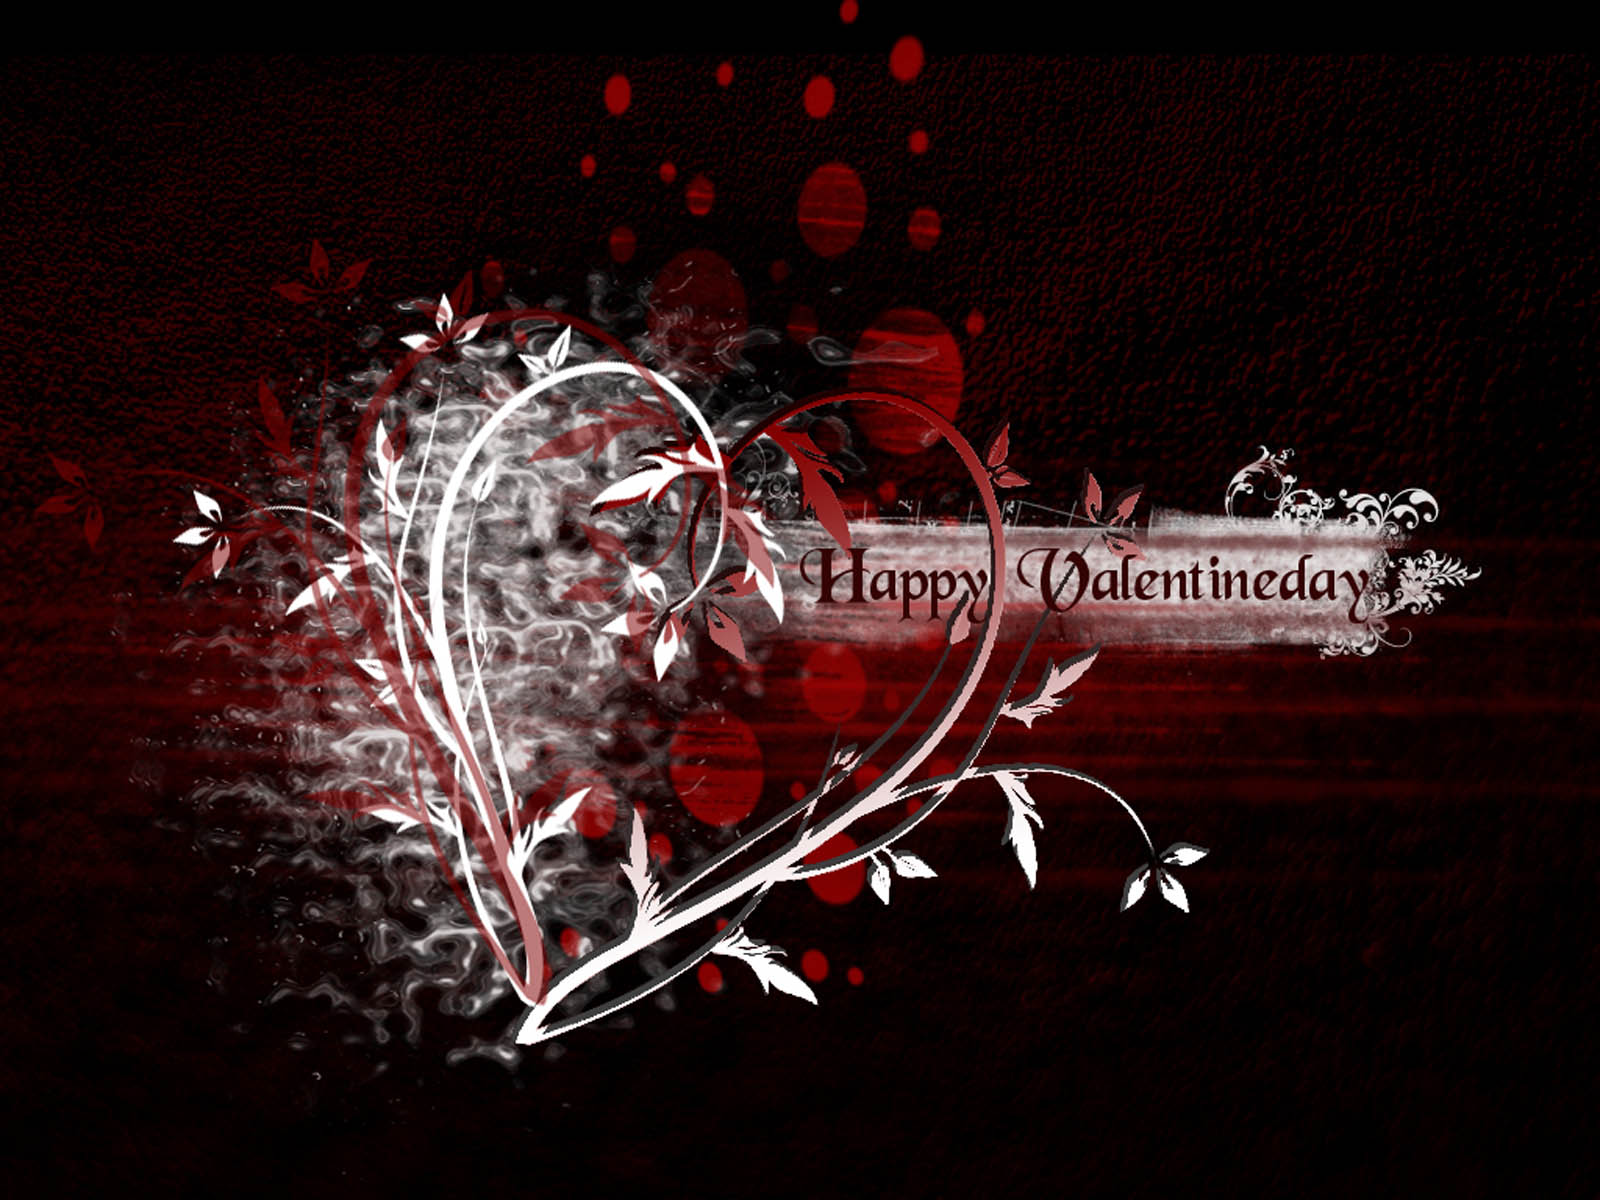 wallpapers Valentines Day Desktop Wallpapers 2013 1600x1200